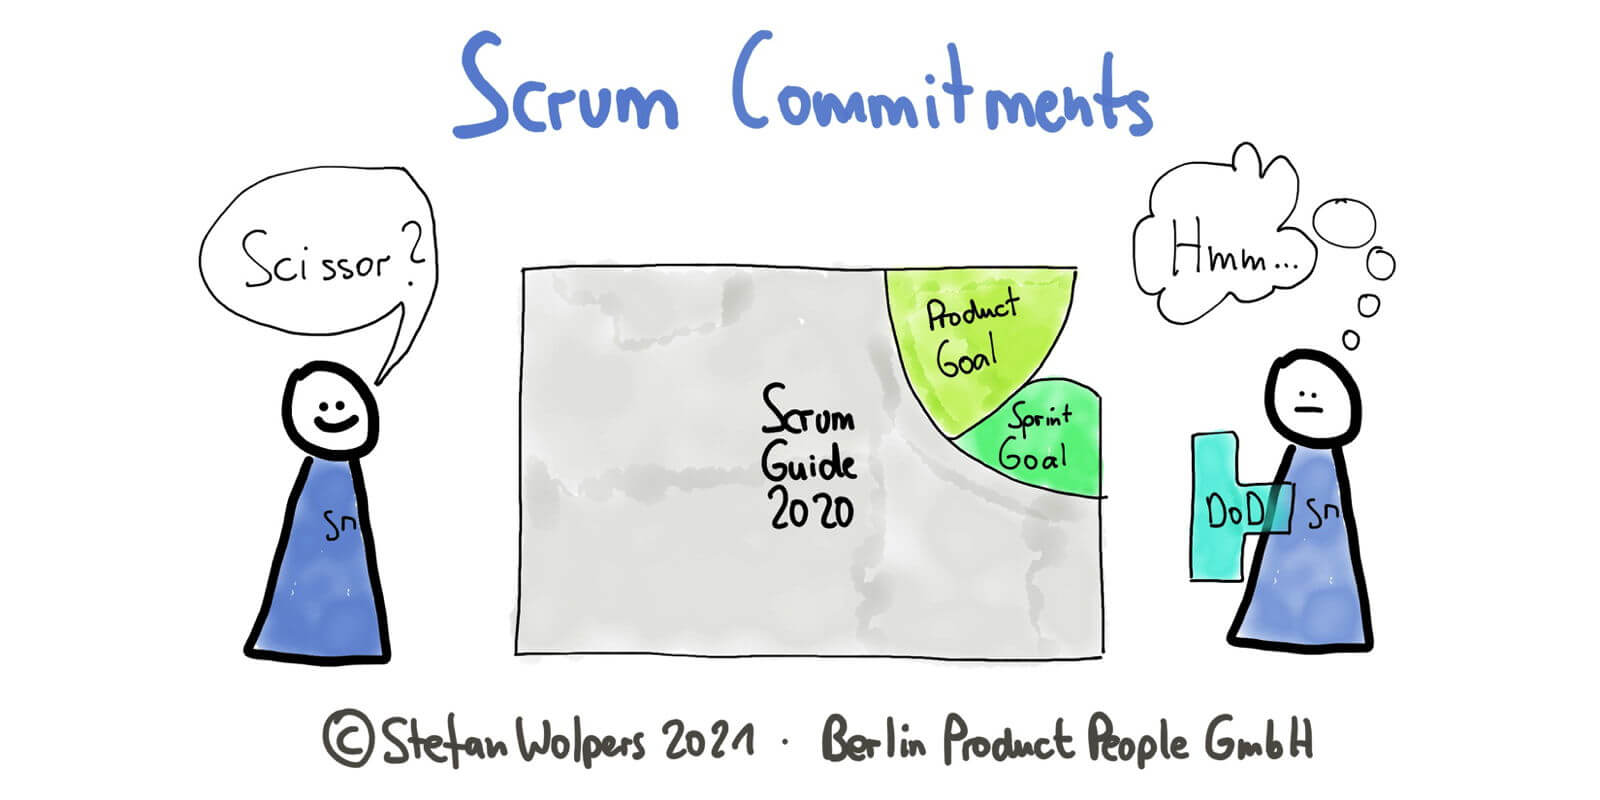 Scrum Commitments: Tying Loose Ends and Shoehorning the Definition of Done — Age-of-Product.com